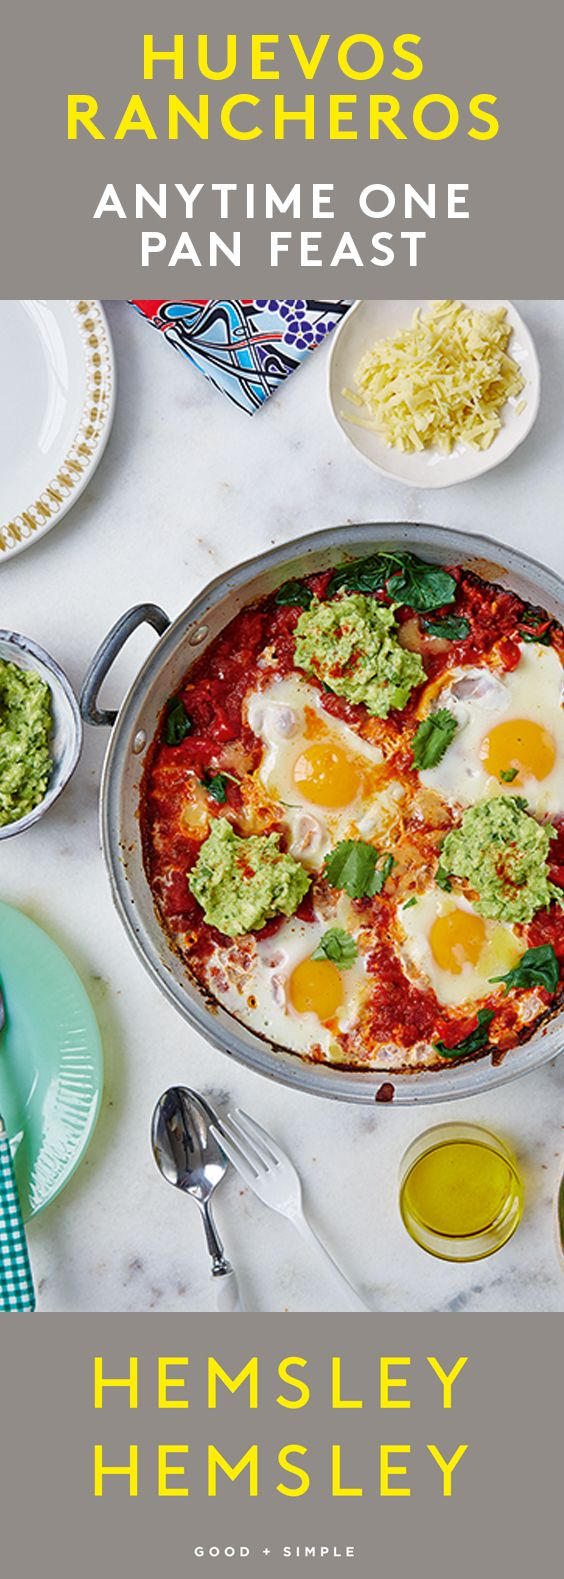 We love pasture reared eggs for breakfast, lunch and supper and this satisfying dish also makes a favourite weekend brunch. It comes together in no time at all, leaving you plenty of time to potter around, read the papers, and relax. The fiery rich red sauce with the cool and creamy smashed avocado is a delicious combo. From our bestselling second cookbook Good + Simple, and as seen in Eating Well with Hemsley + Hemsley, Mondays at 8pm on Channel 4 - starting 2016, May 9.